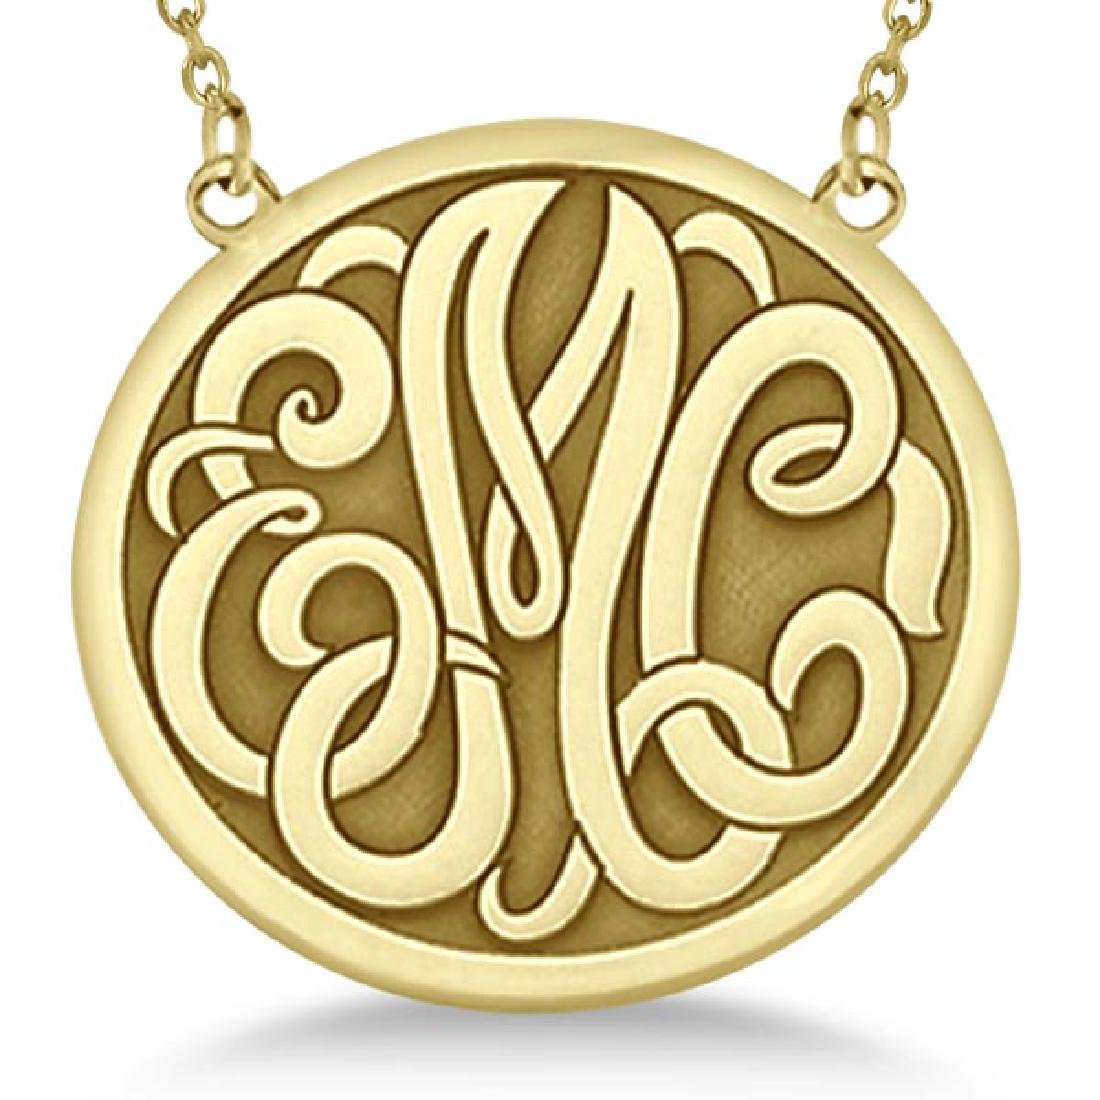 Engraved Initial Circle Monogram Pendant Necklace in 14